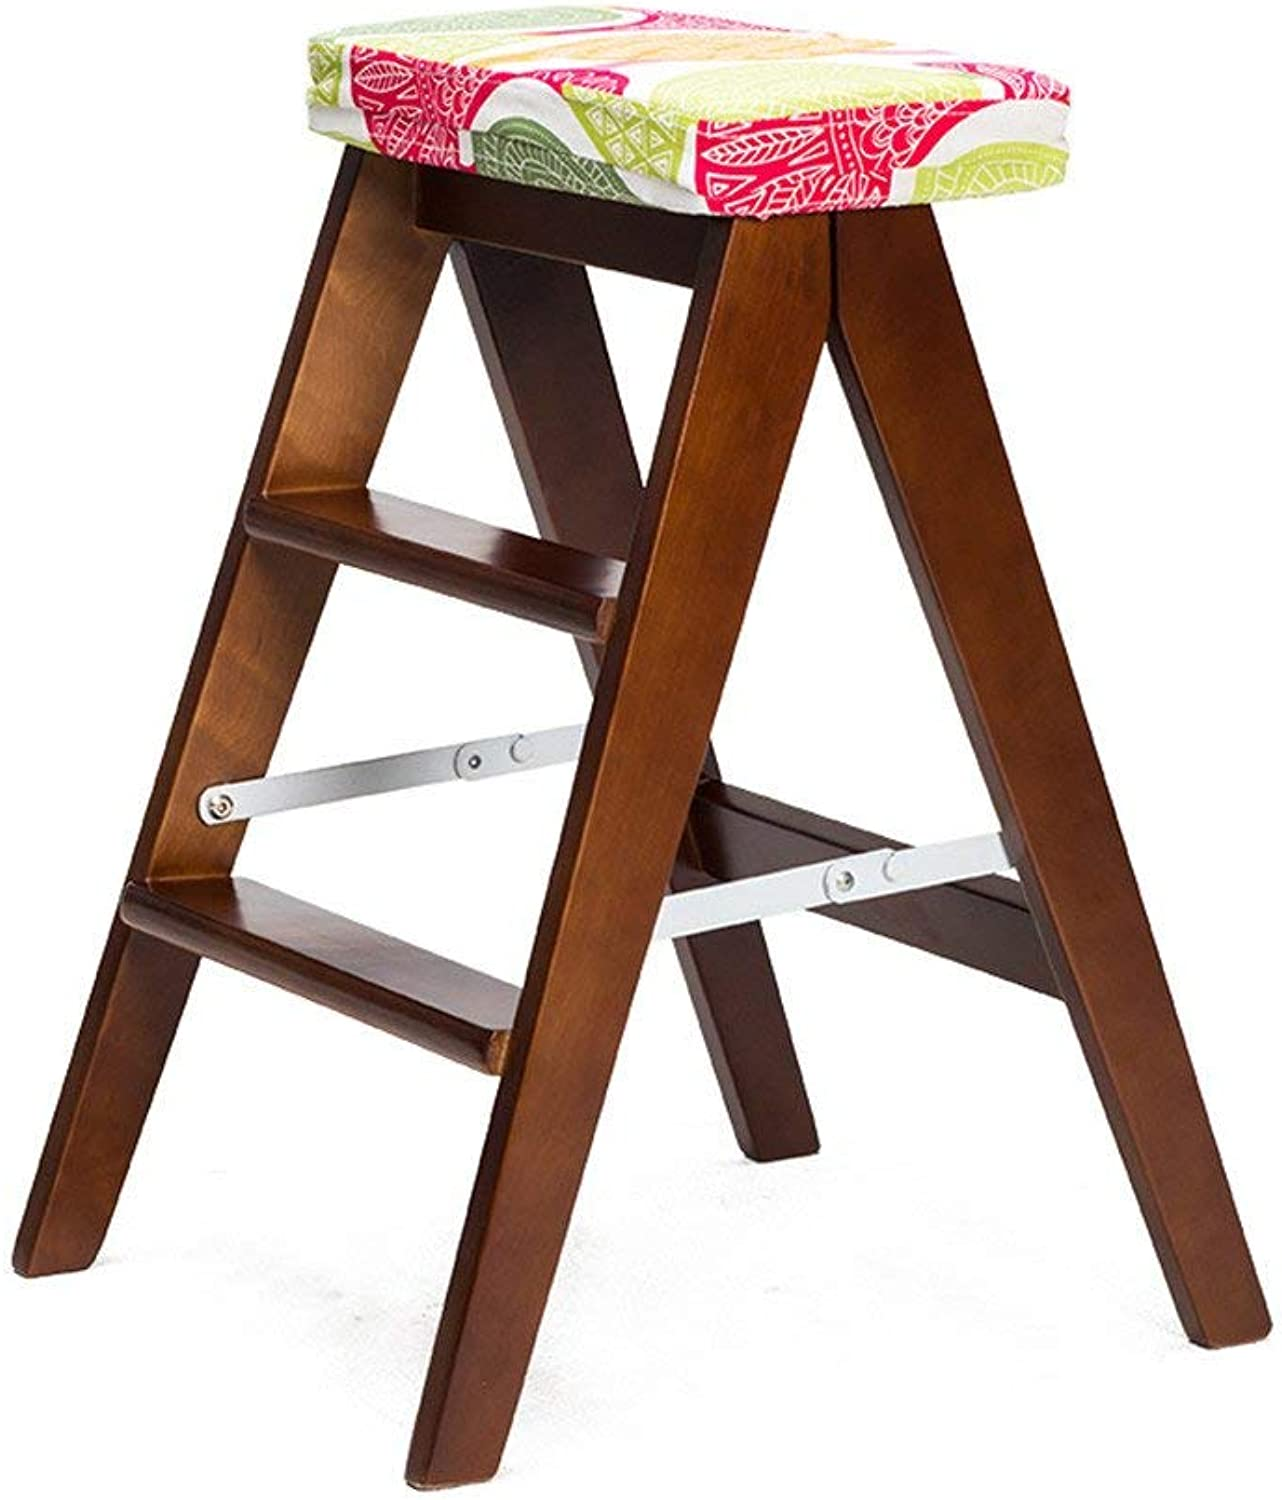 STEP STOOLS HOME 4 Steps Solid Wood Stairs Chair Folding Ladder Home Climb Up Wooden Utility Step Ladder Stool Multifunction Creative Dual Use FlowerRack (color   Brown, Size   1 )